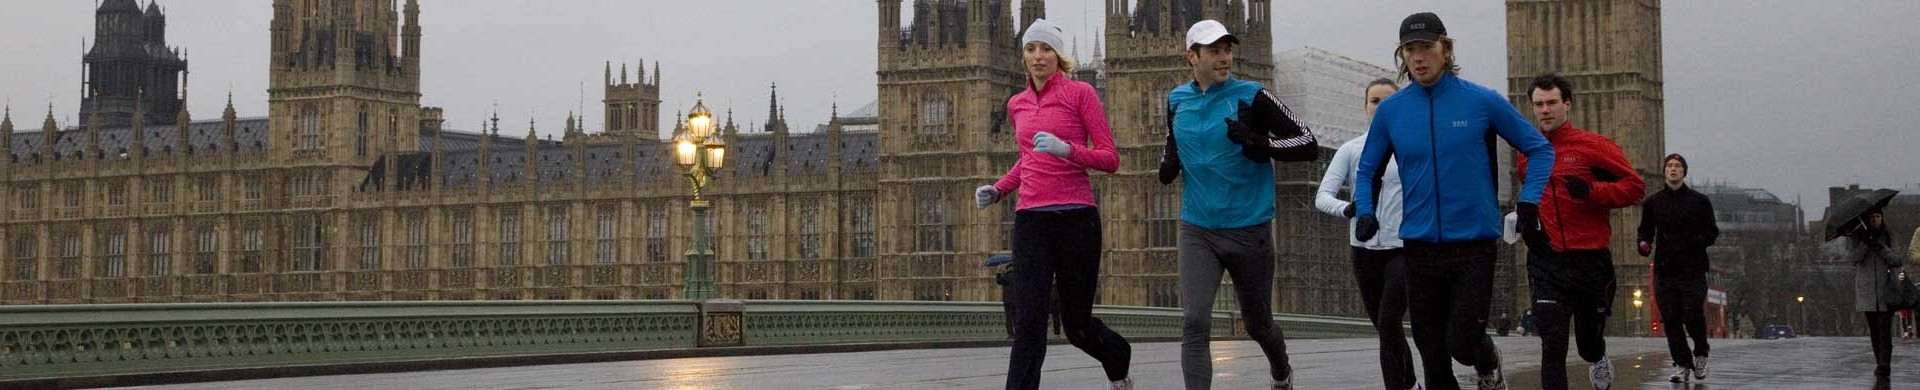 Parliament + London + Running